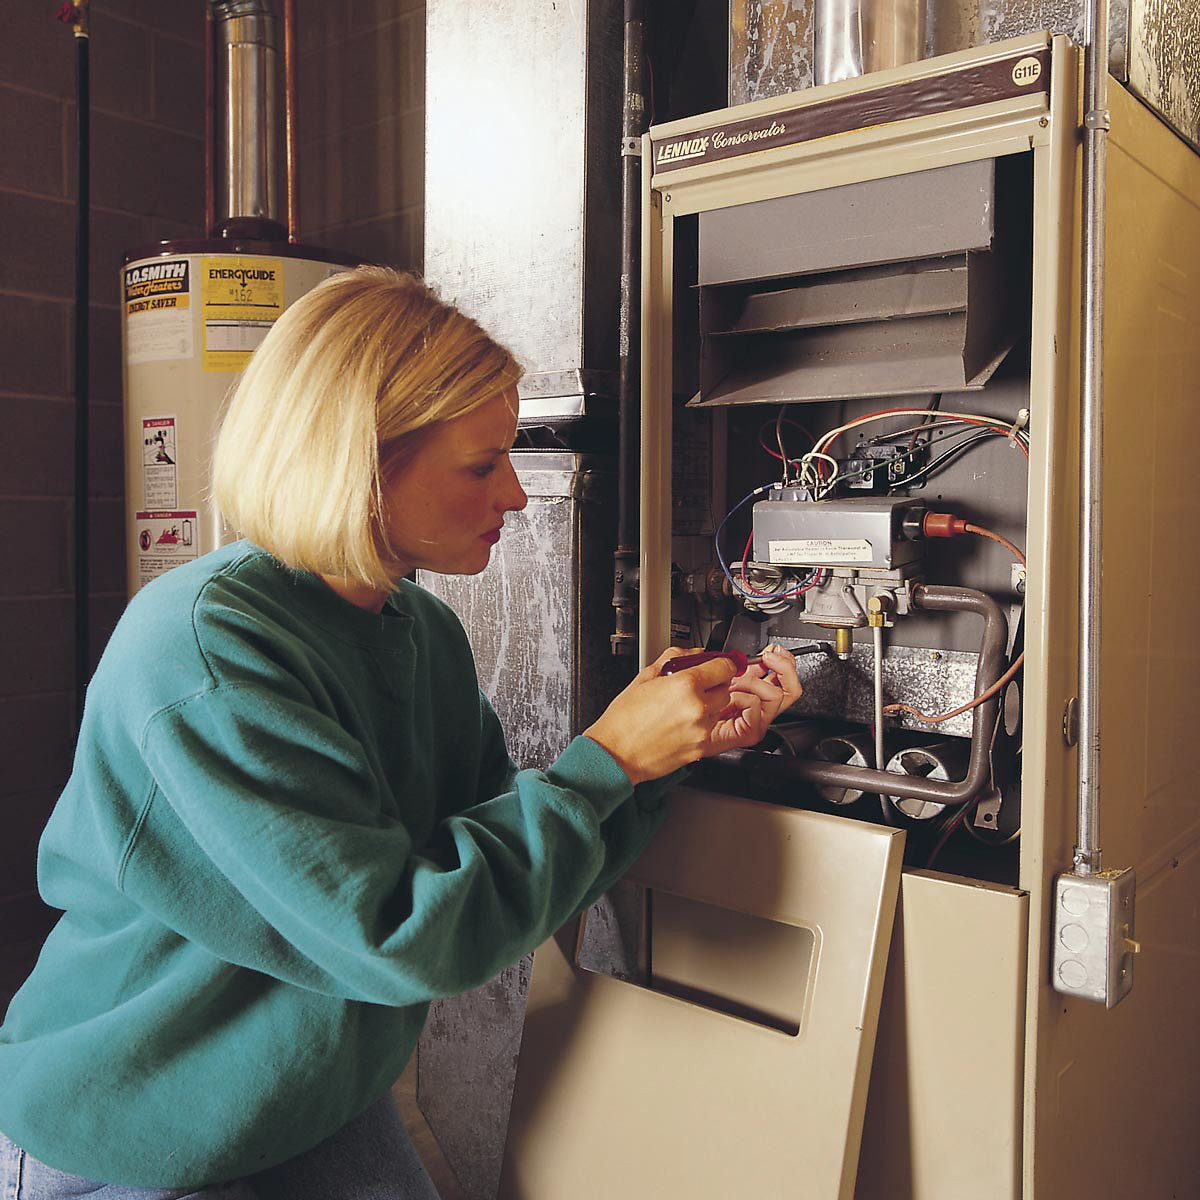 Troubleshooting Your Furnace Until an Austin HVAC Company Can Get to You